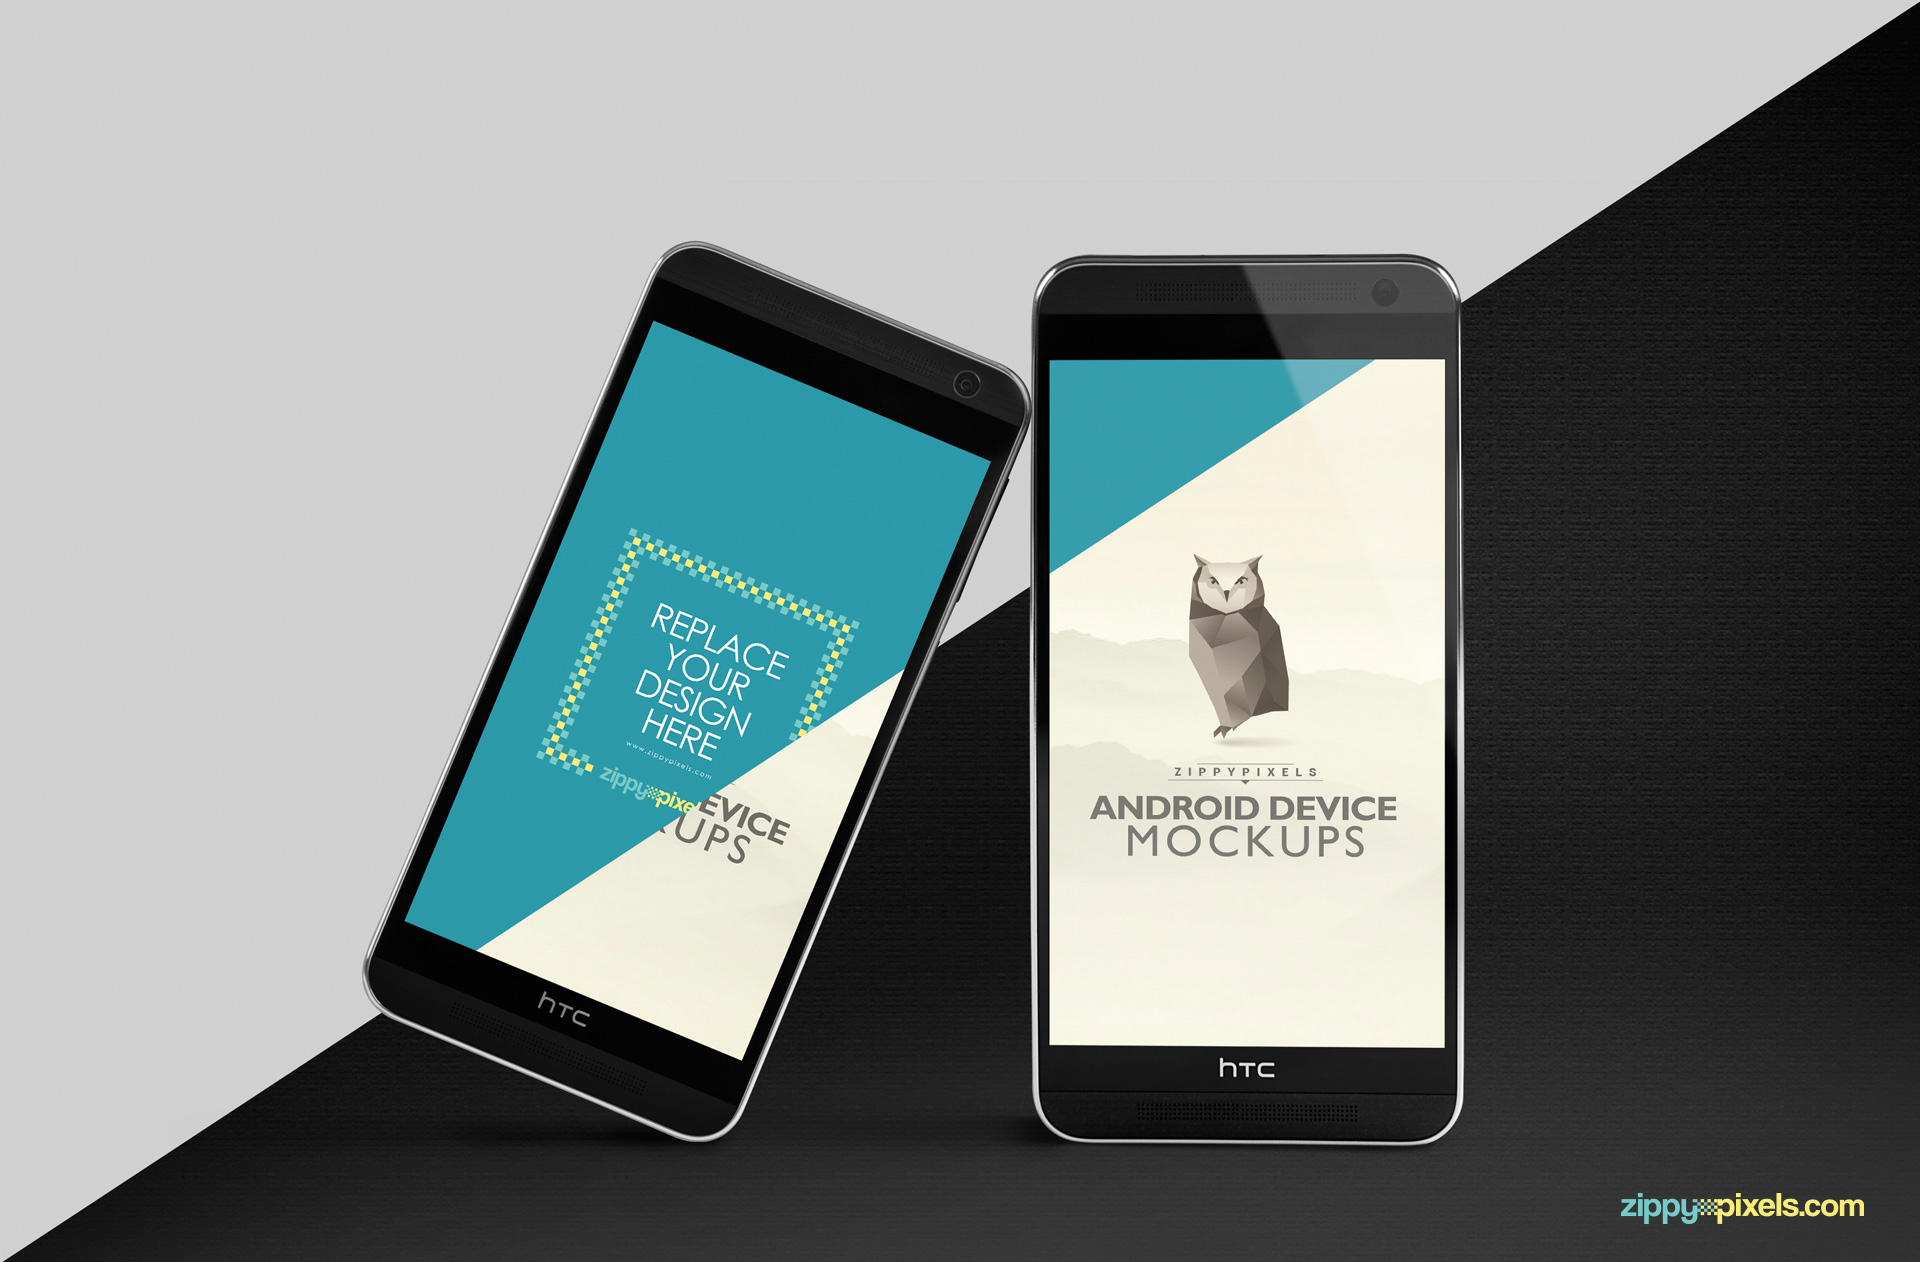 Device mockups to present your UI designs